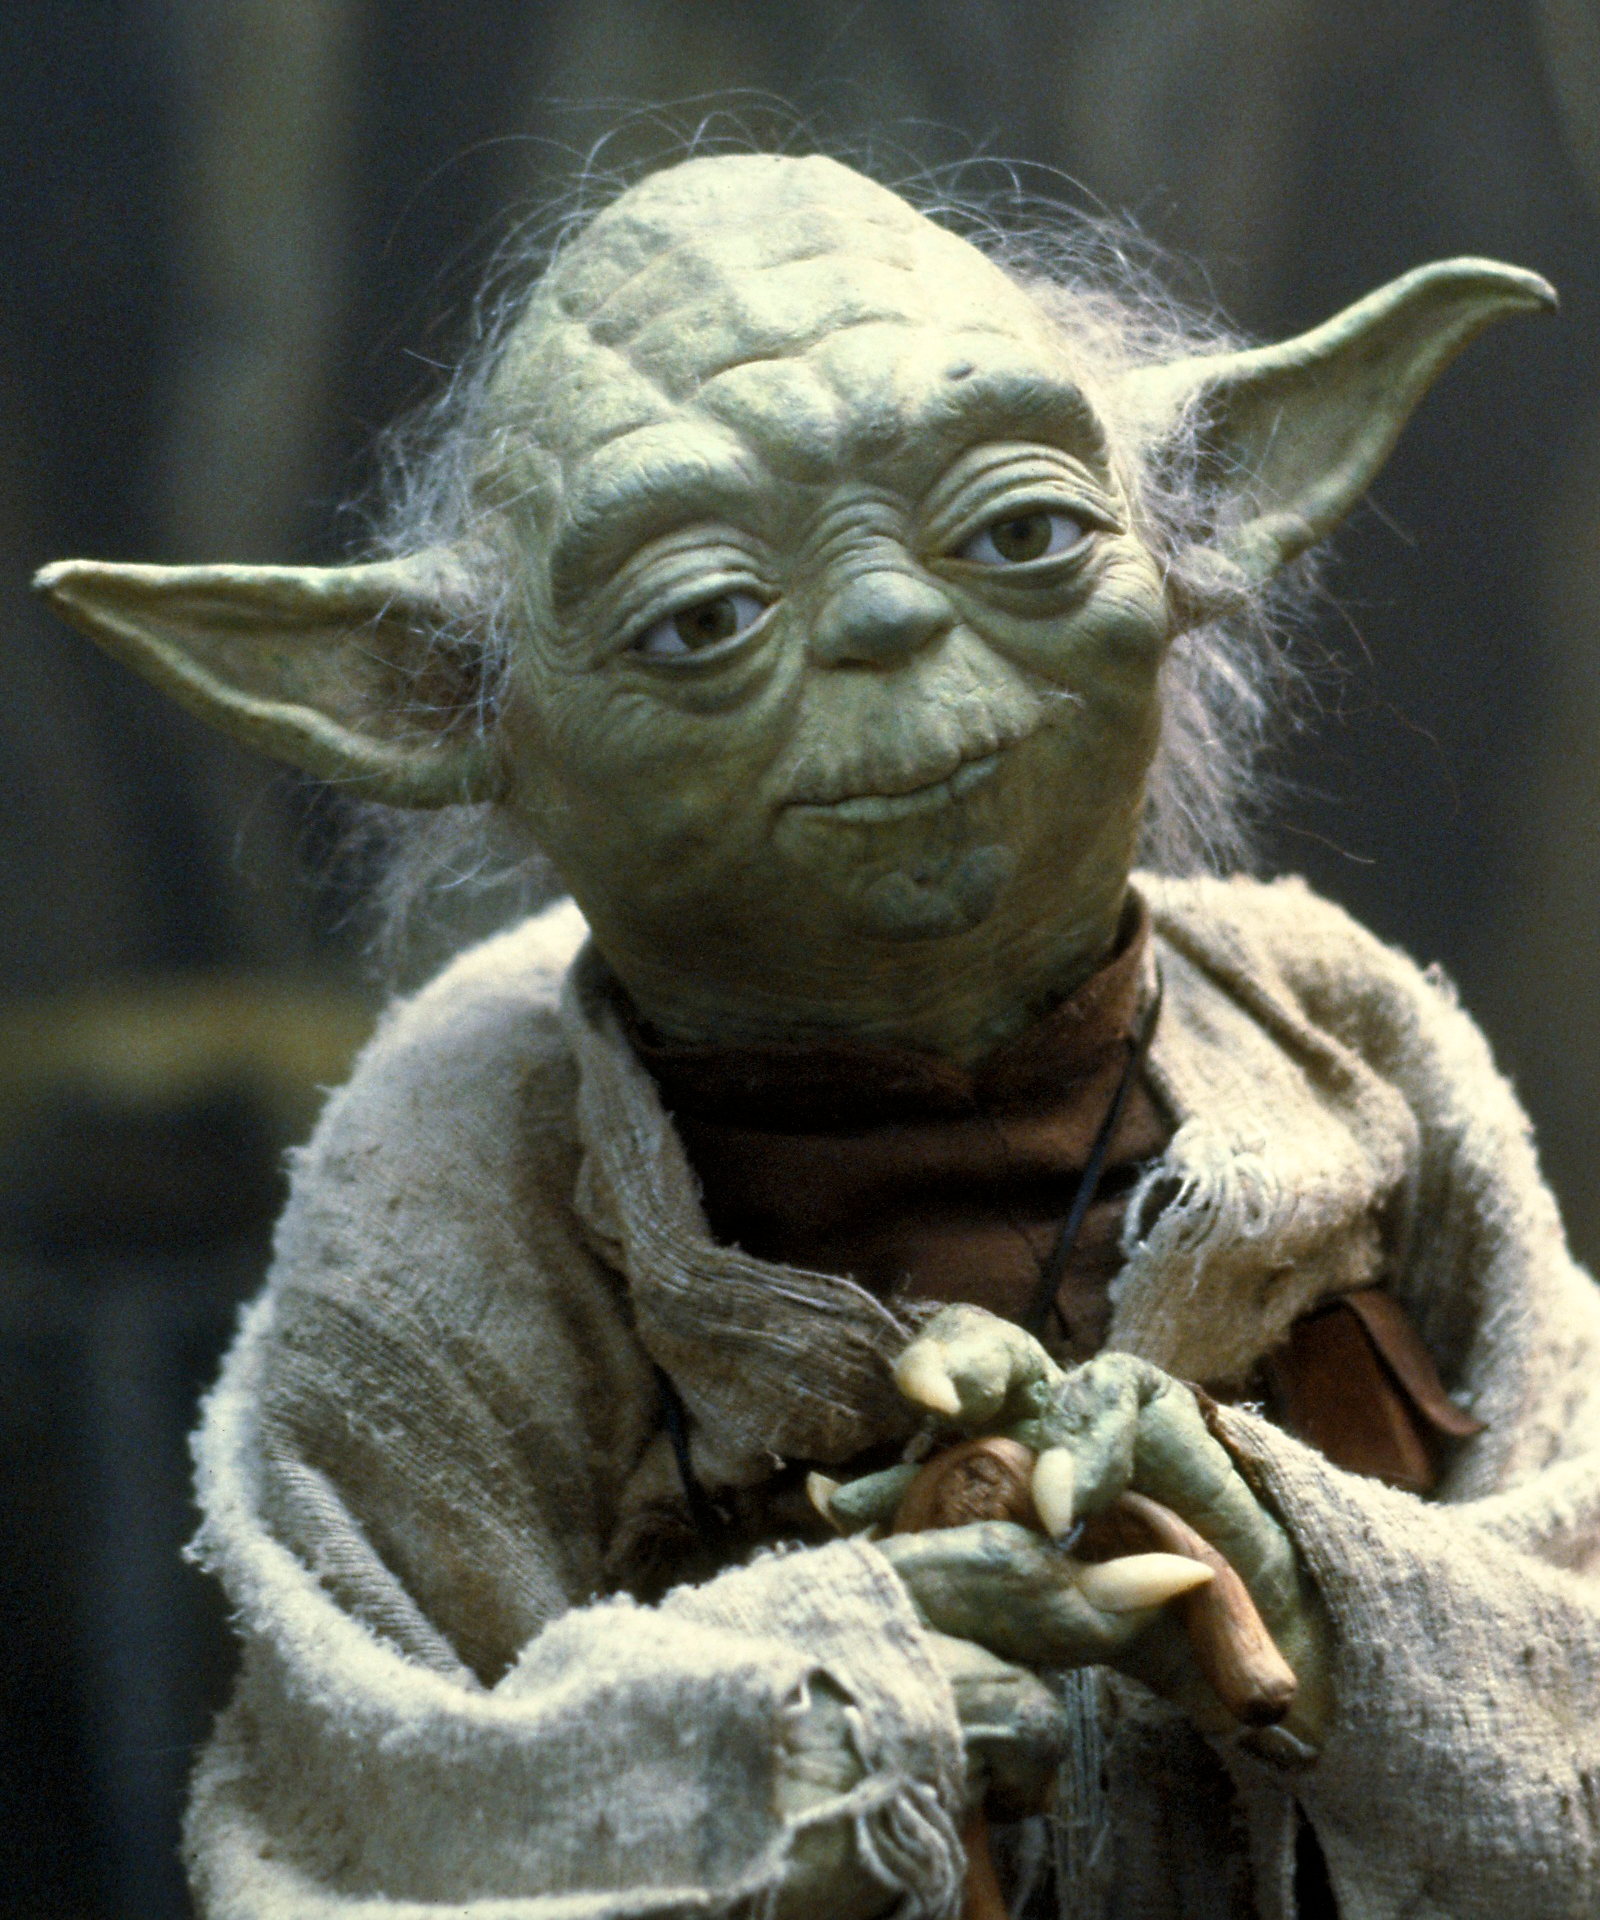 http://img1.wikia.nocookie.net/__cb20131106213953/starwars/images/d/d6/Yoda_SWSB.png